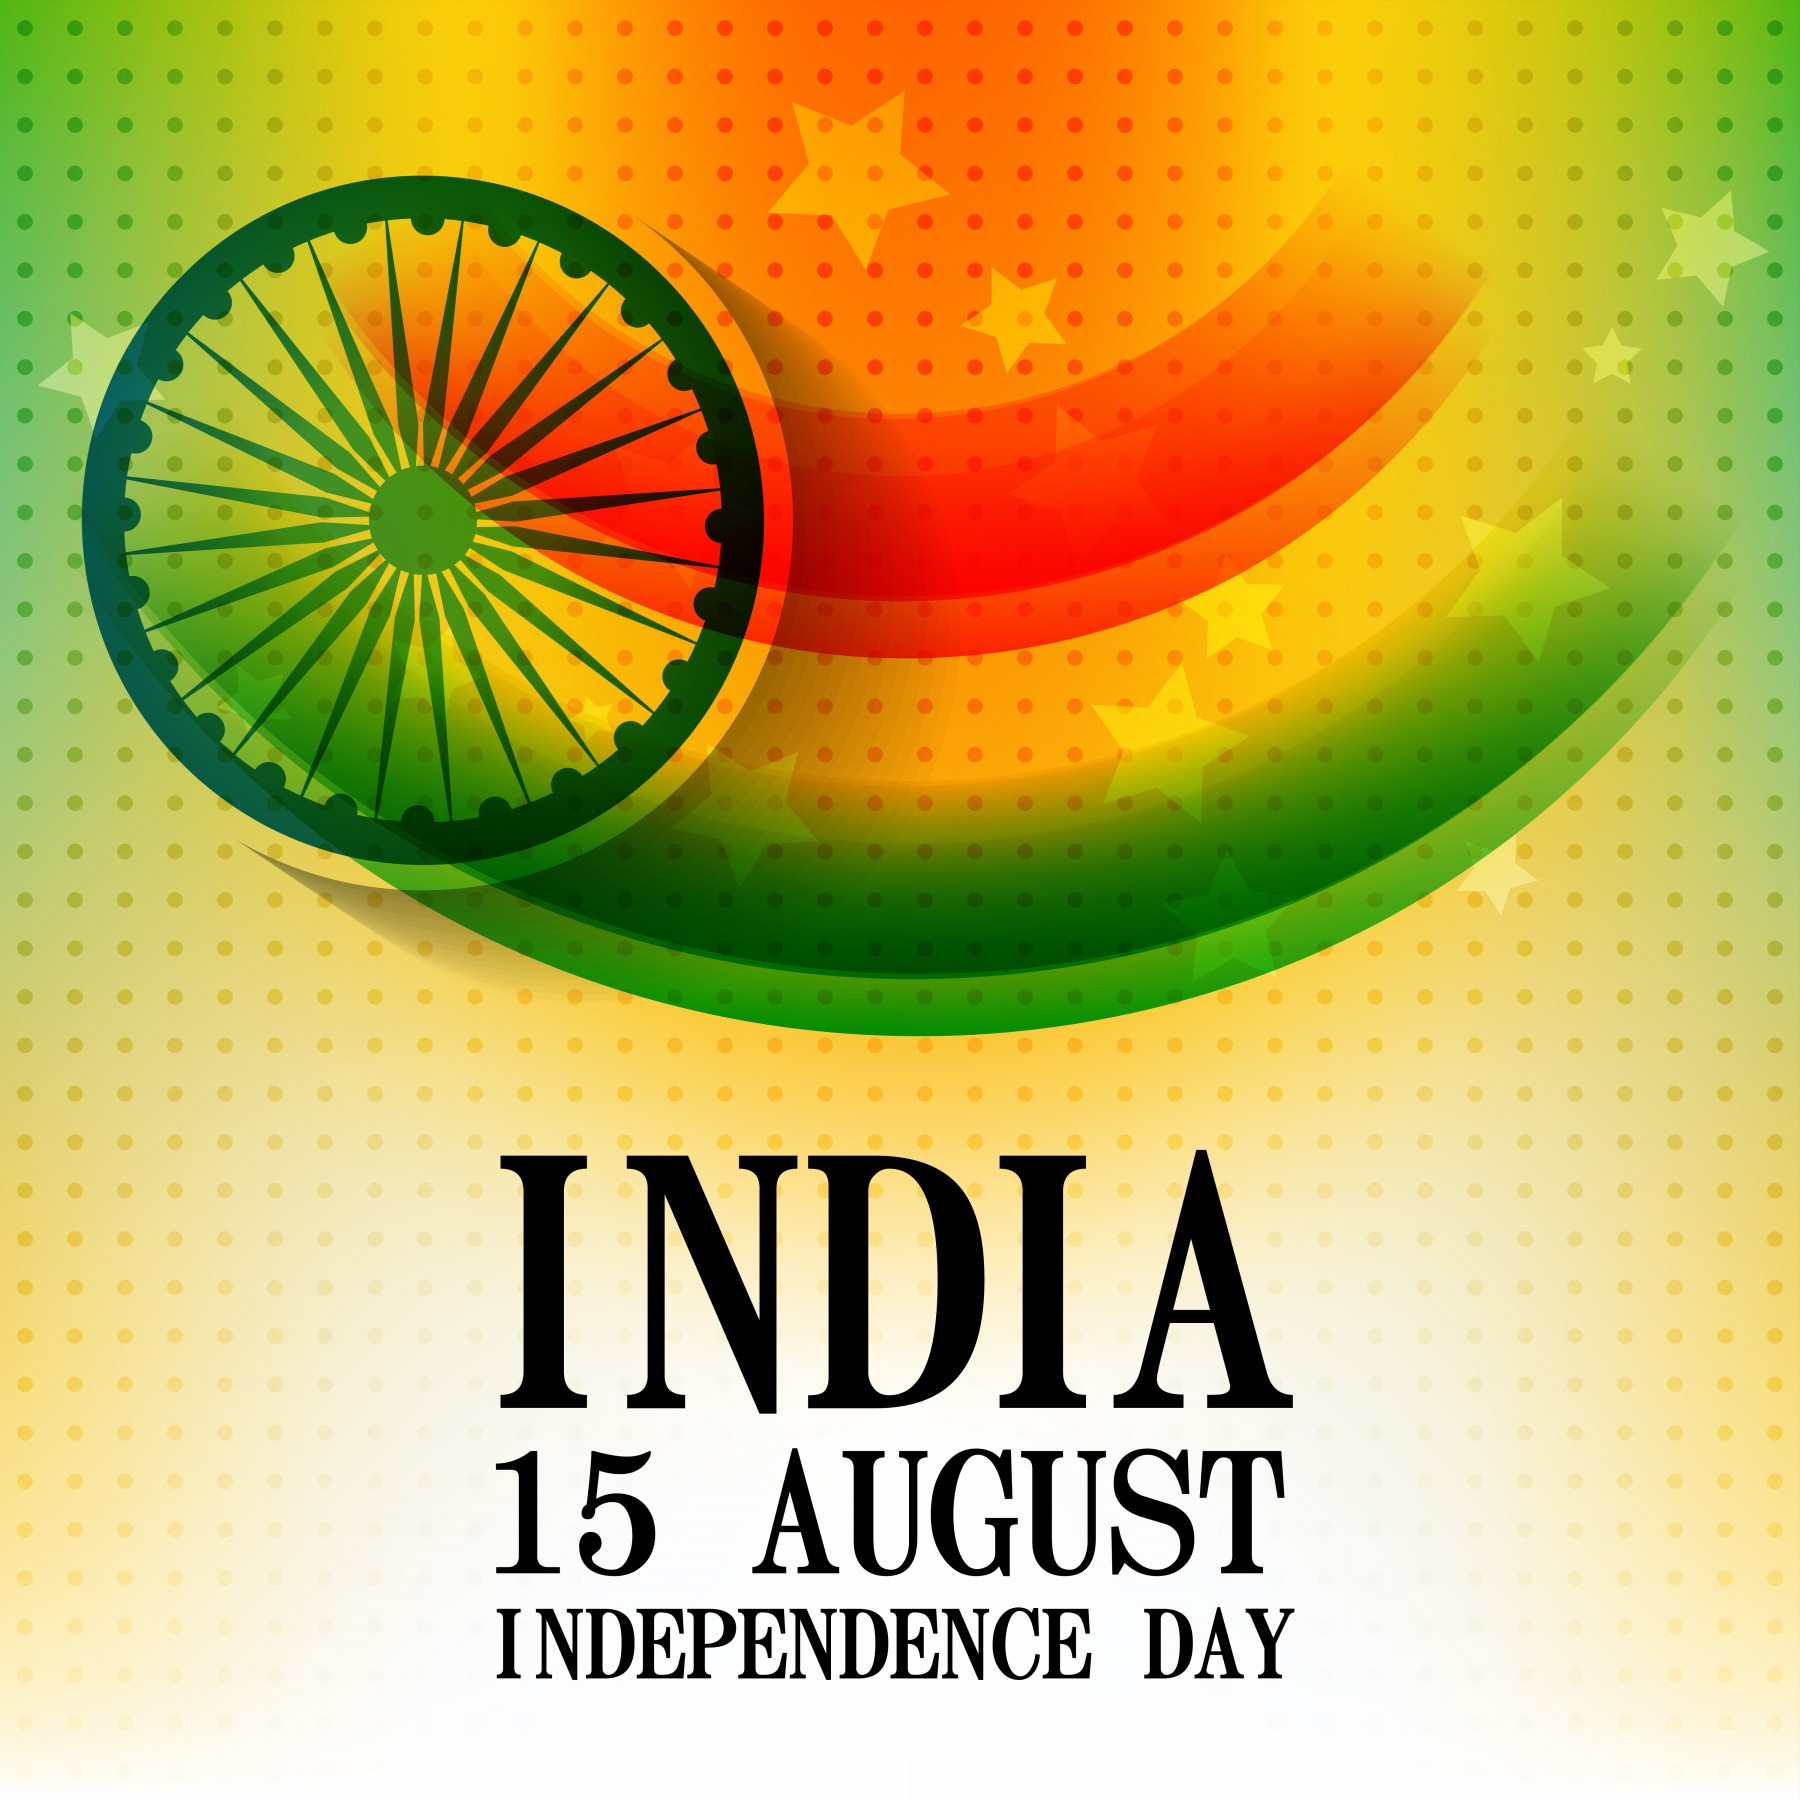 happy independence day hd august15th wallpaper download